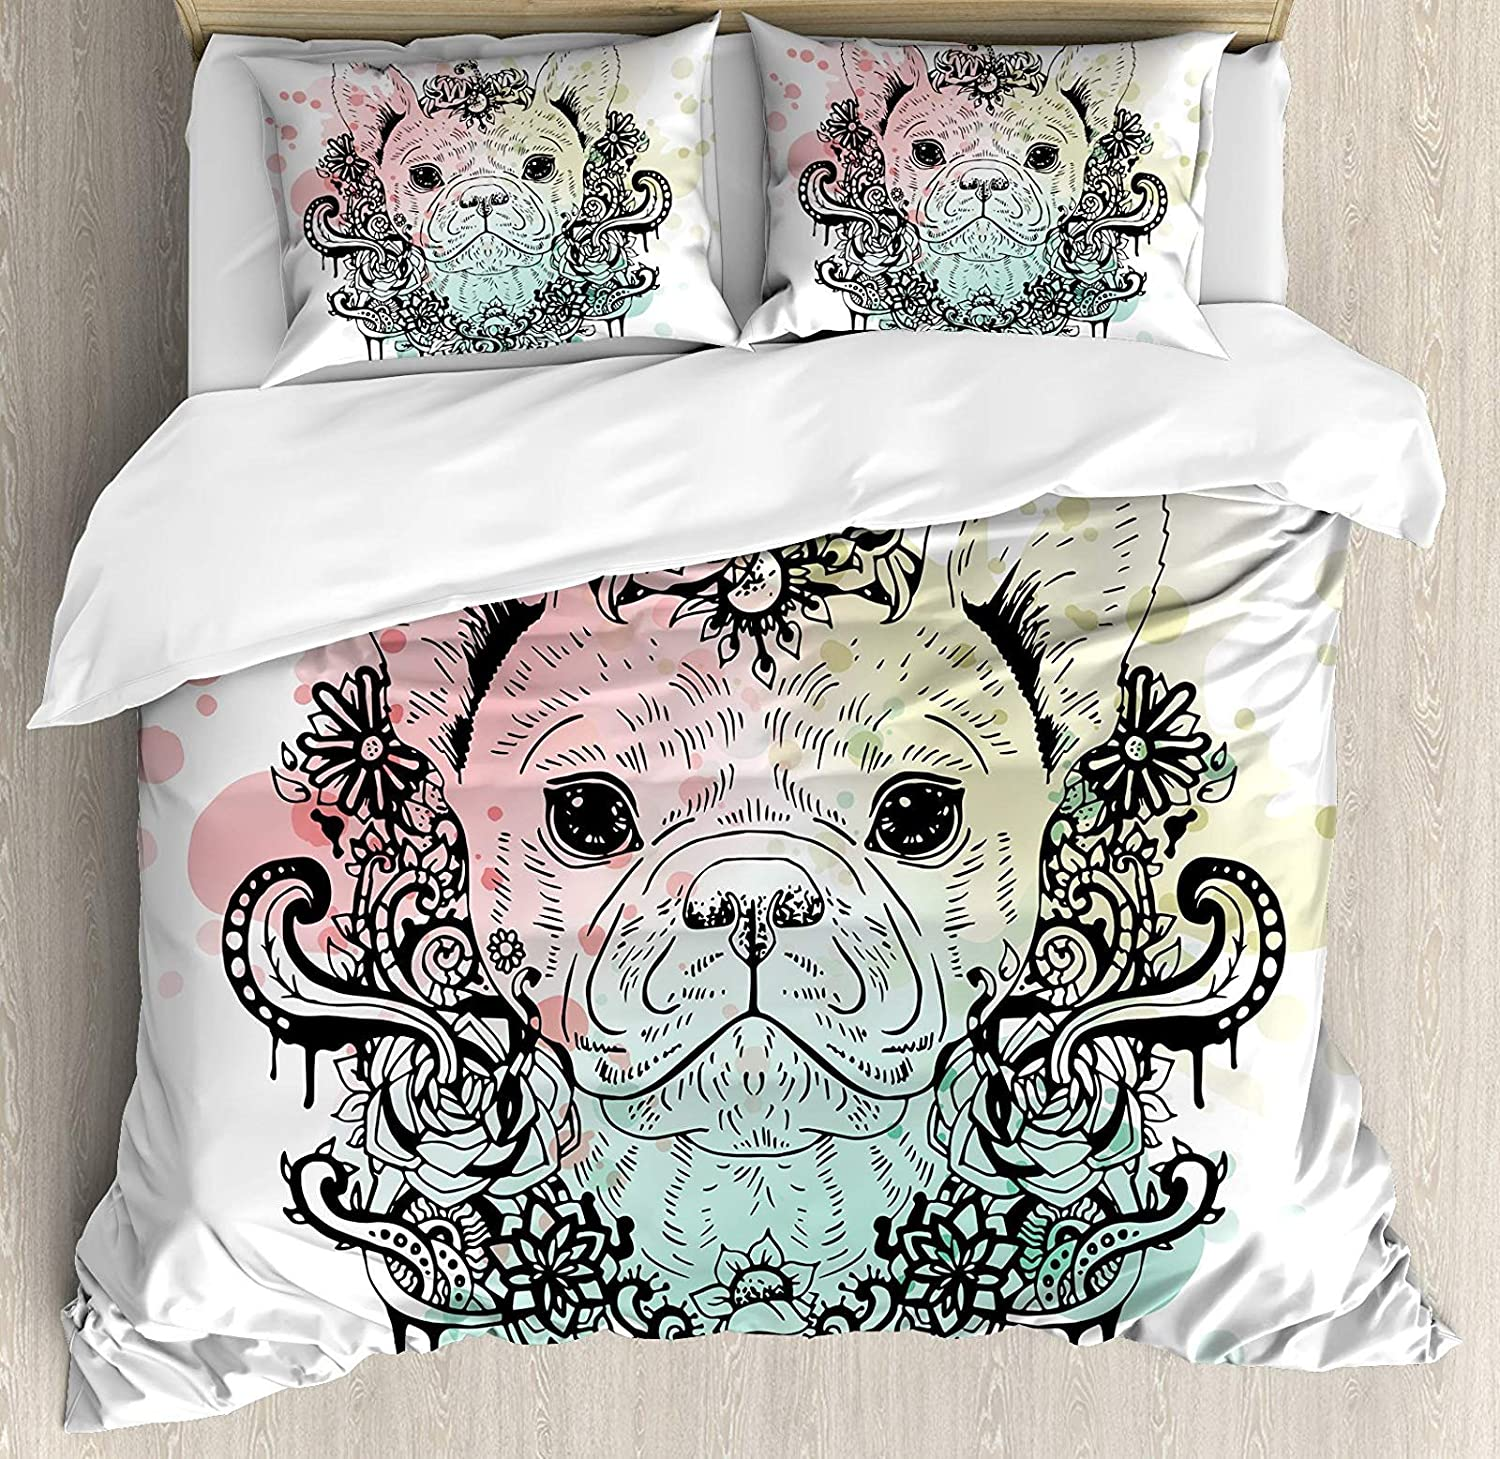 Animal 4 Pcs Bedding Set Twin Size, French Bulldog with Floral Wreath on Brushstroke Watercolor Print All Season Duvet Cover Bed Set, Mint Pale Pink Pale Green